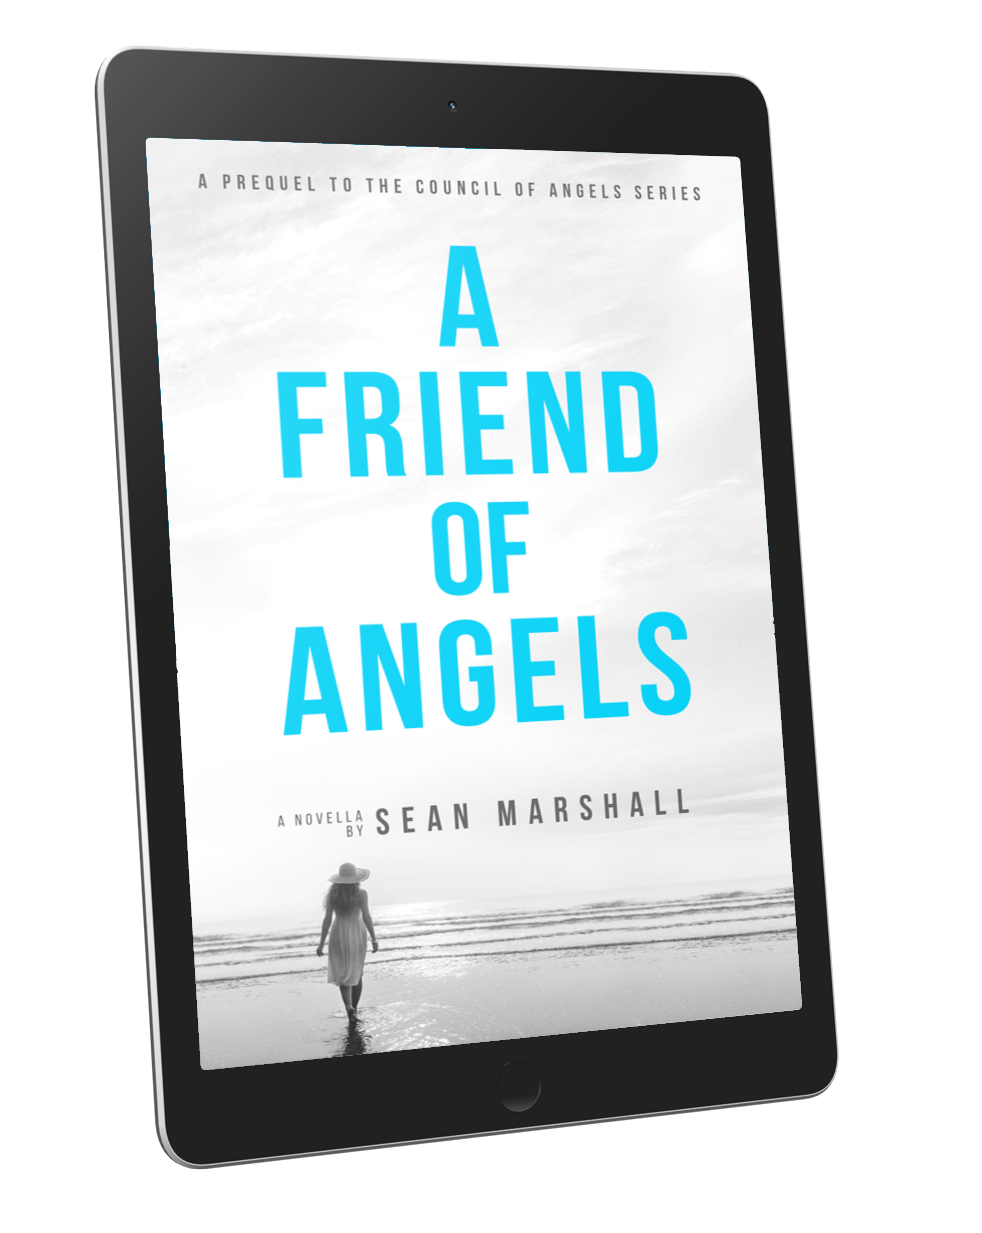 A Friend of Angels by Sean Marshall